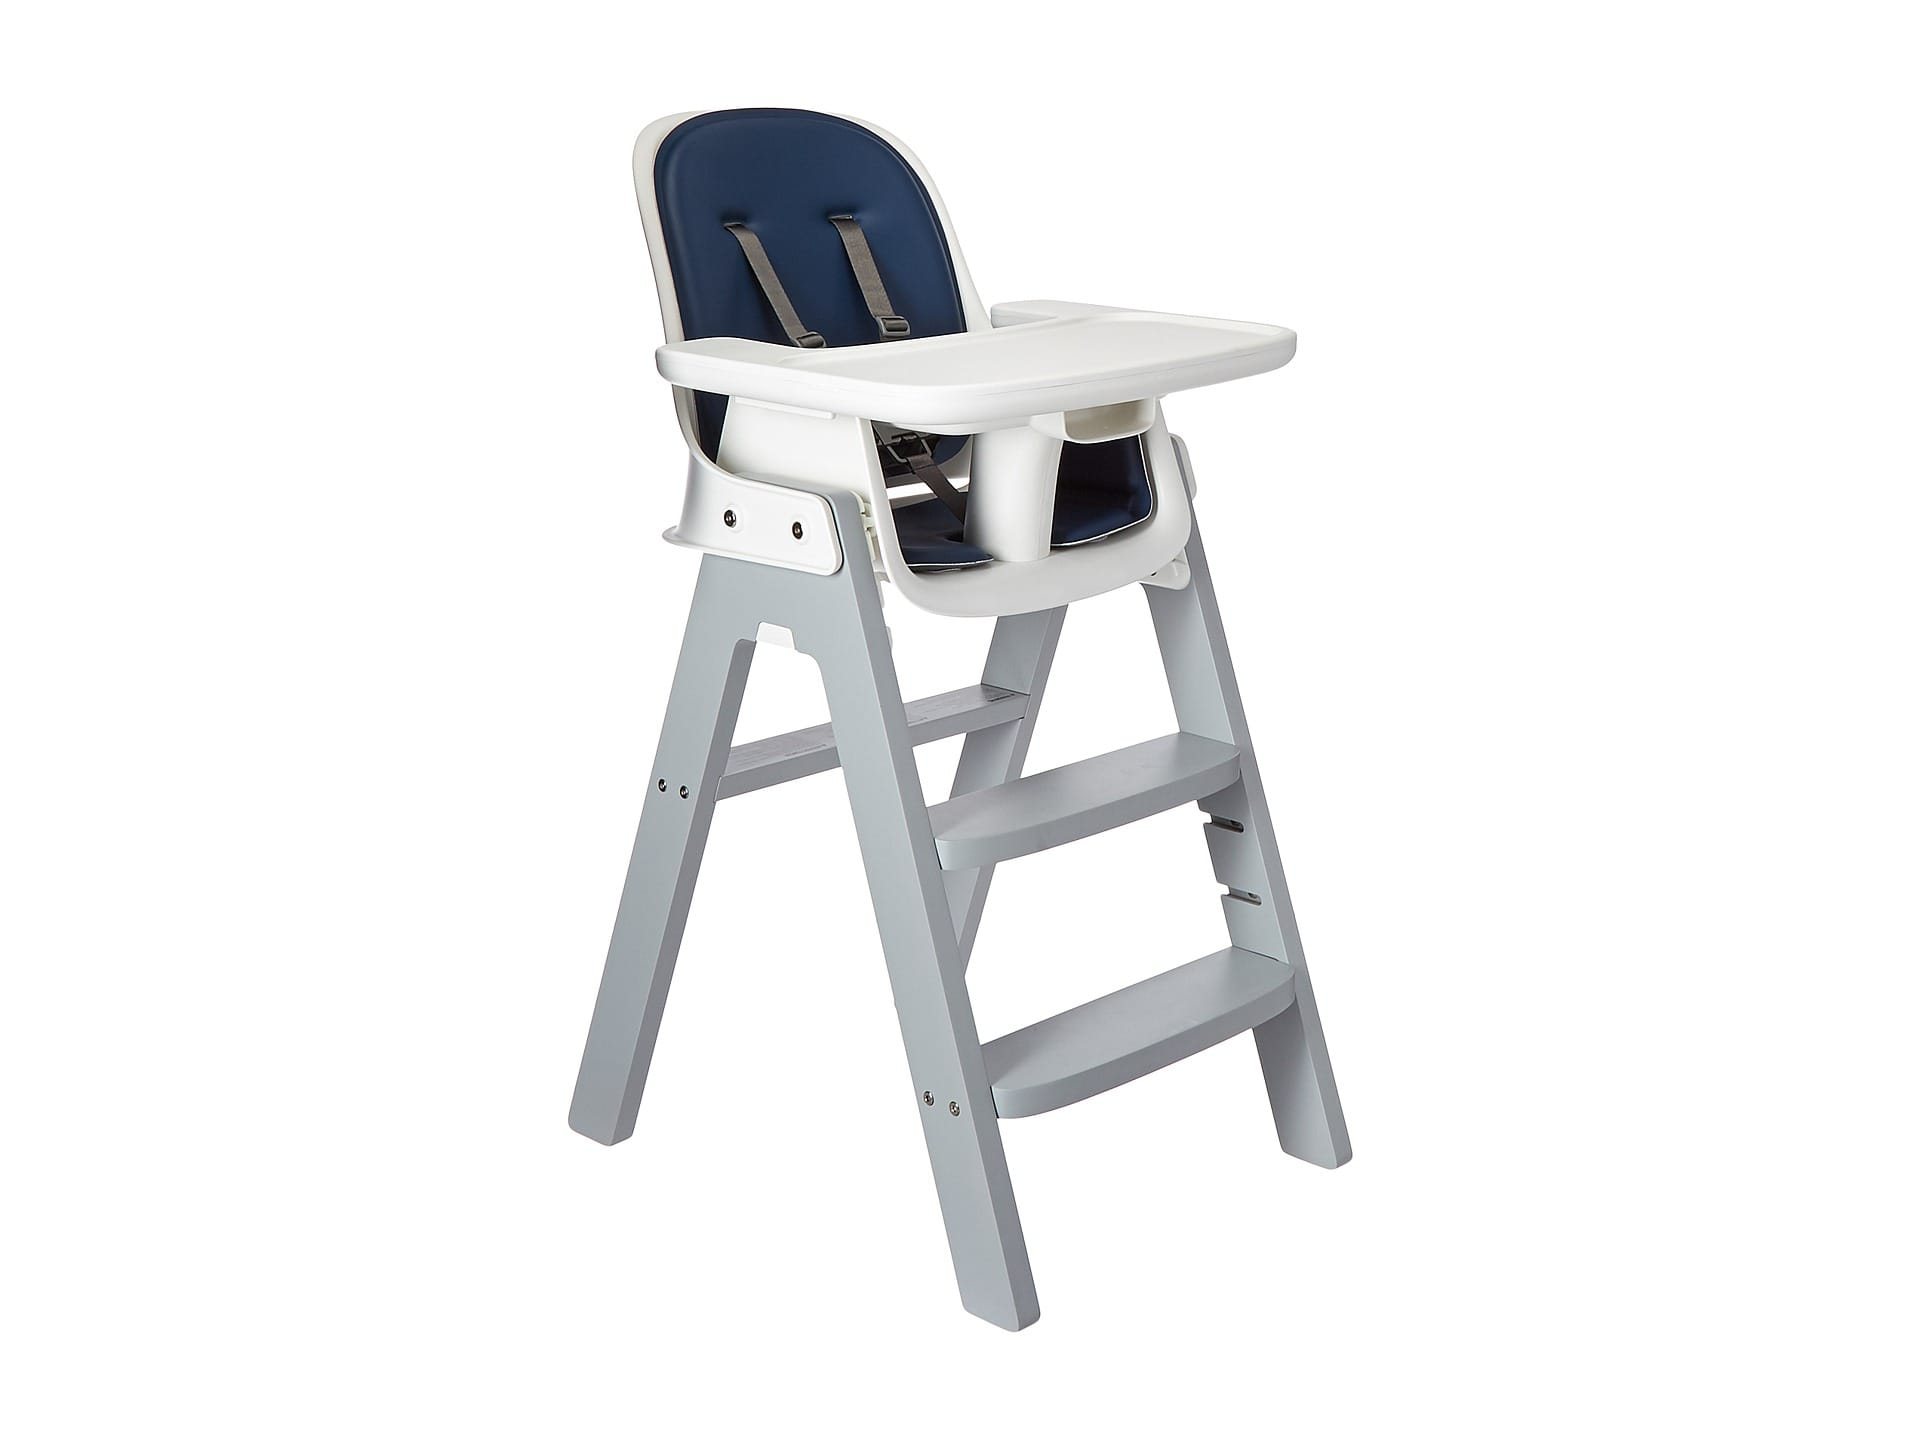 best high chair easy to clean marcy roman review full size oxo tot sprout